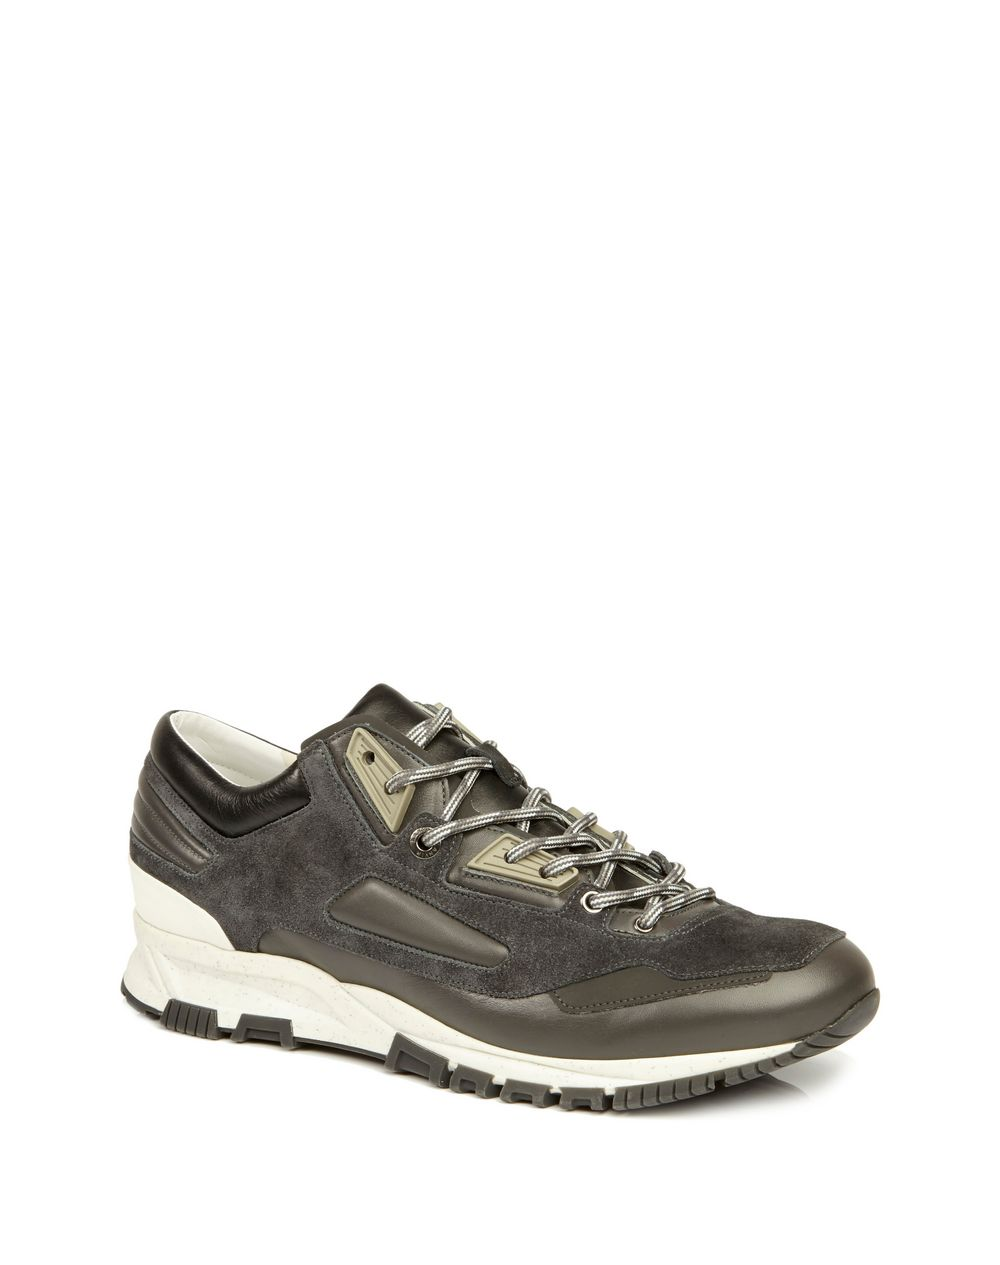 SUEDE CALFSKIN CROSS-TRAINER - Lanvin